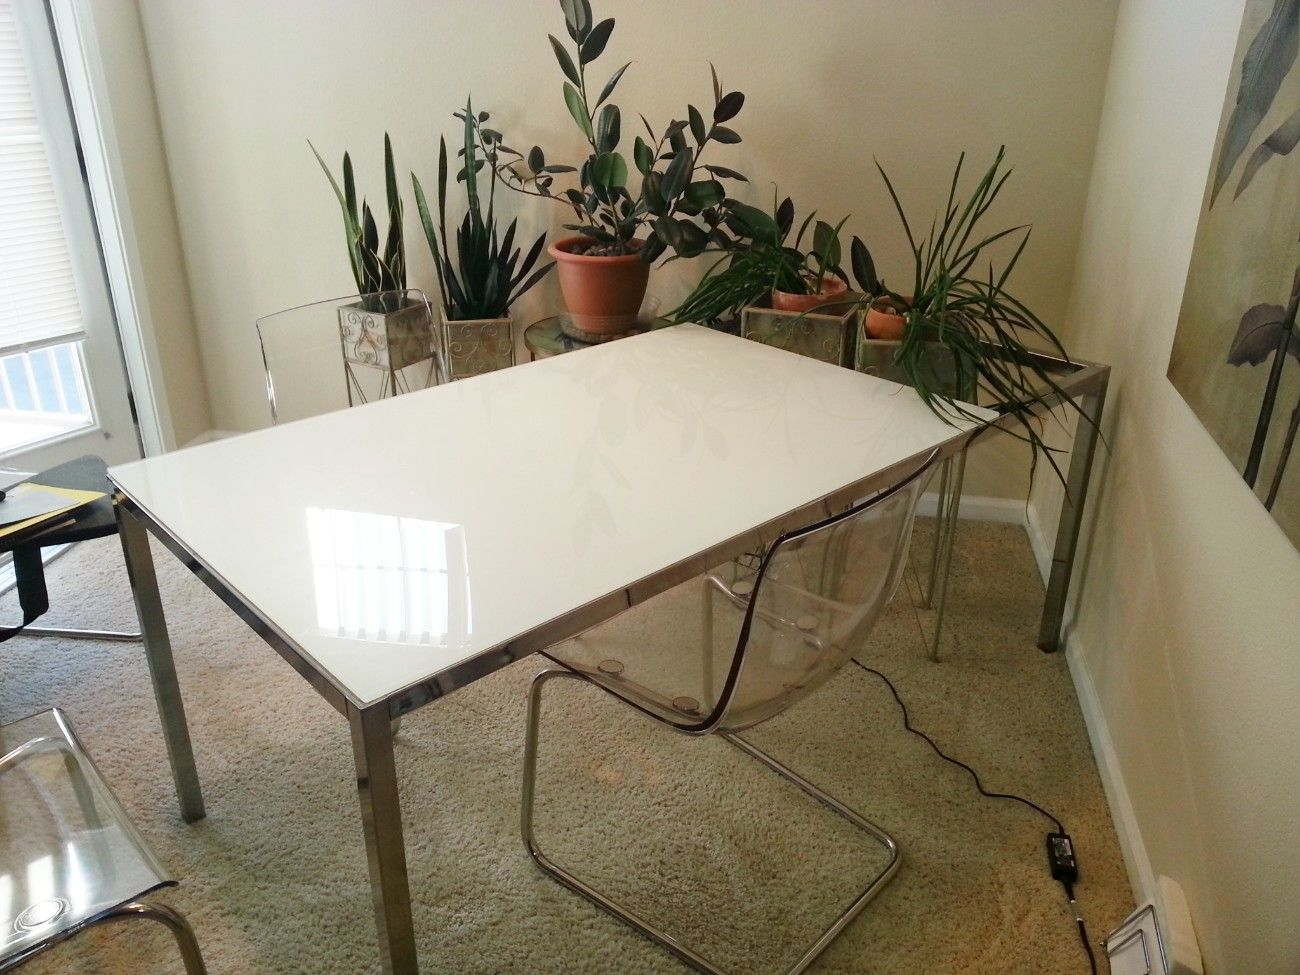 Santa clarita ikea torsby glass top dining table 299 home office pinterest glass top - Glass dining table ikea ...